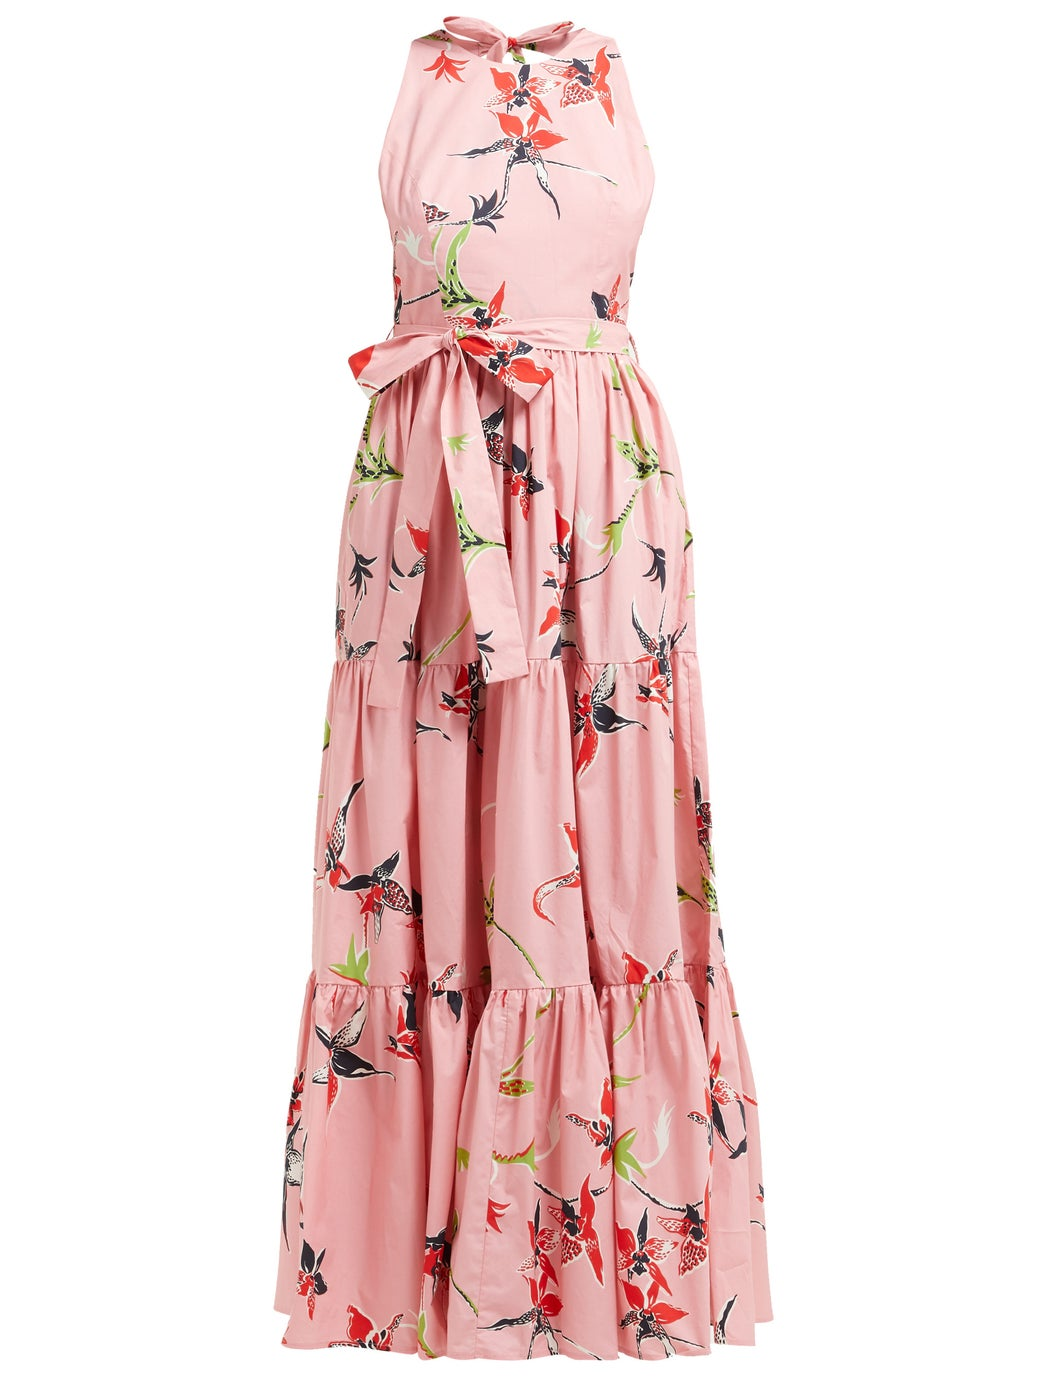 take 40% off this  floral printed dress !